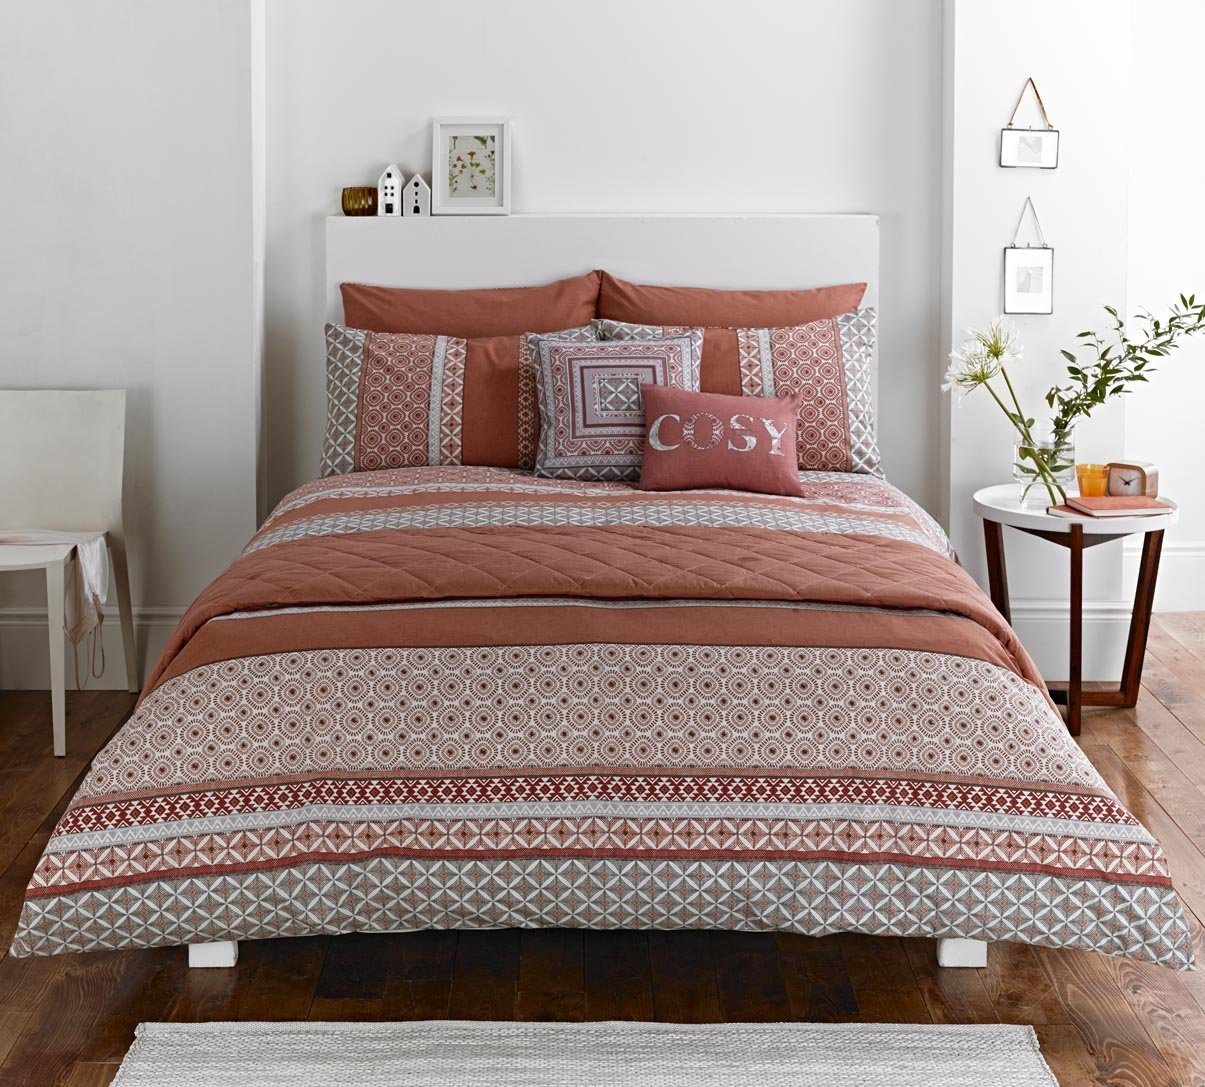 light white bedroom duvet grey pin l bohemian aztec and cover copper quilt